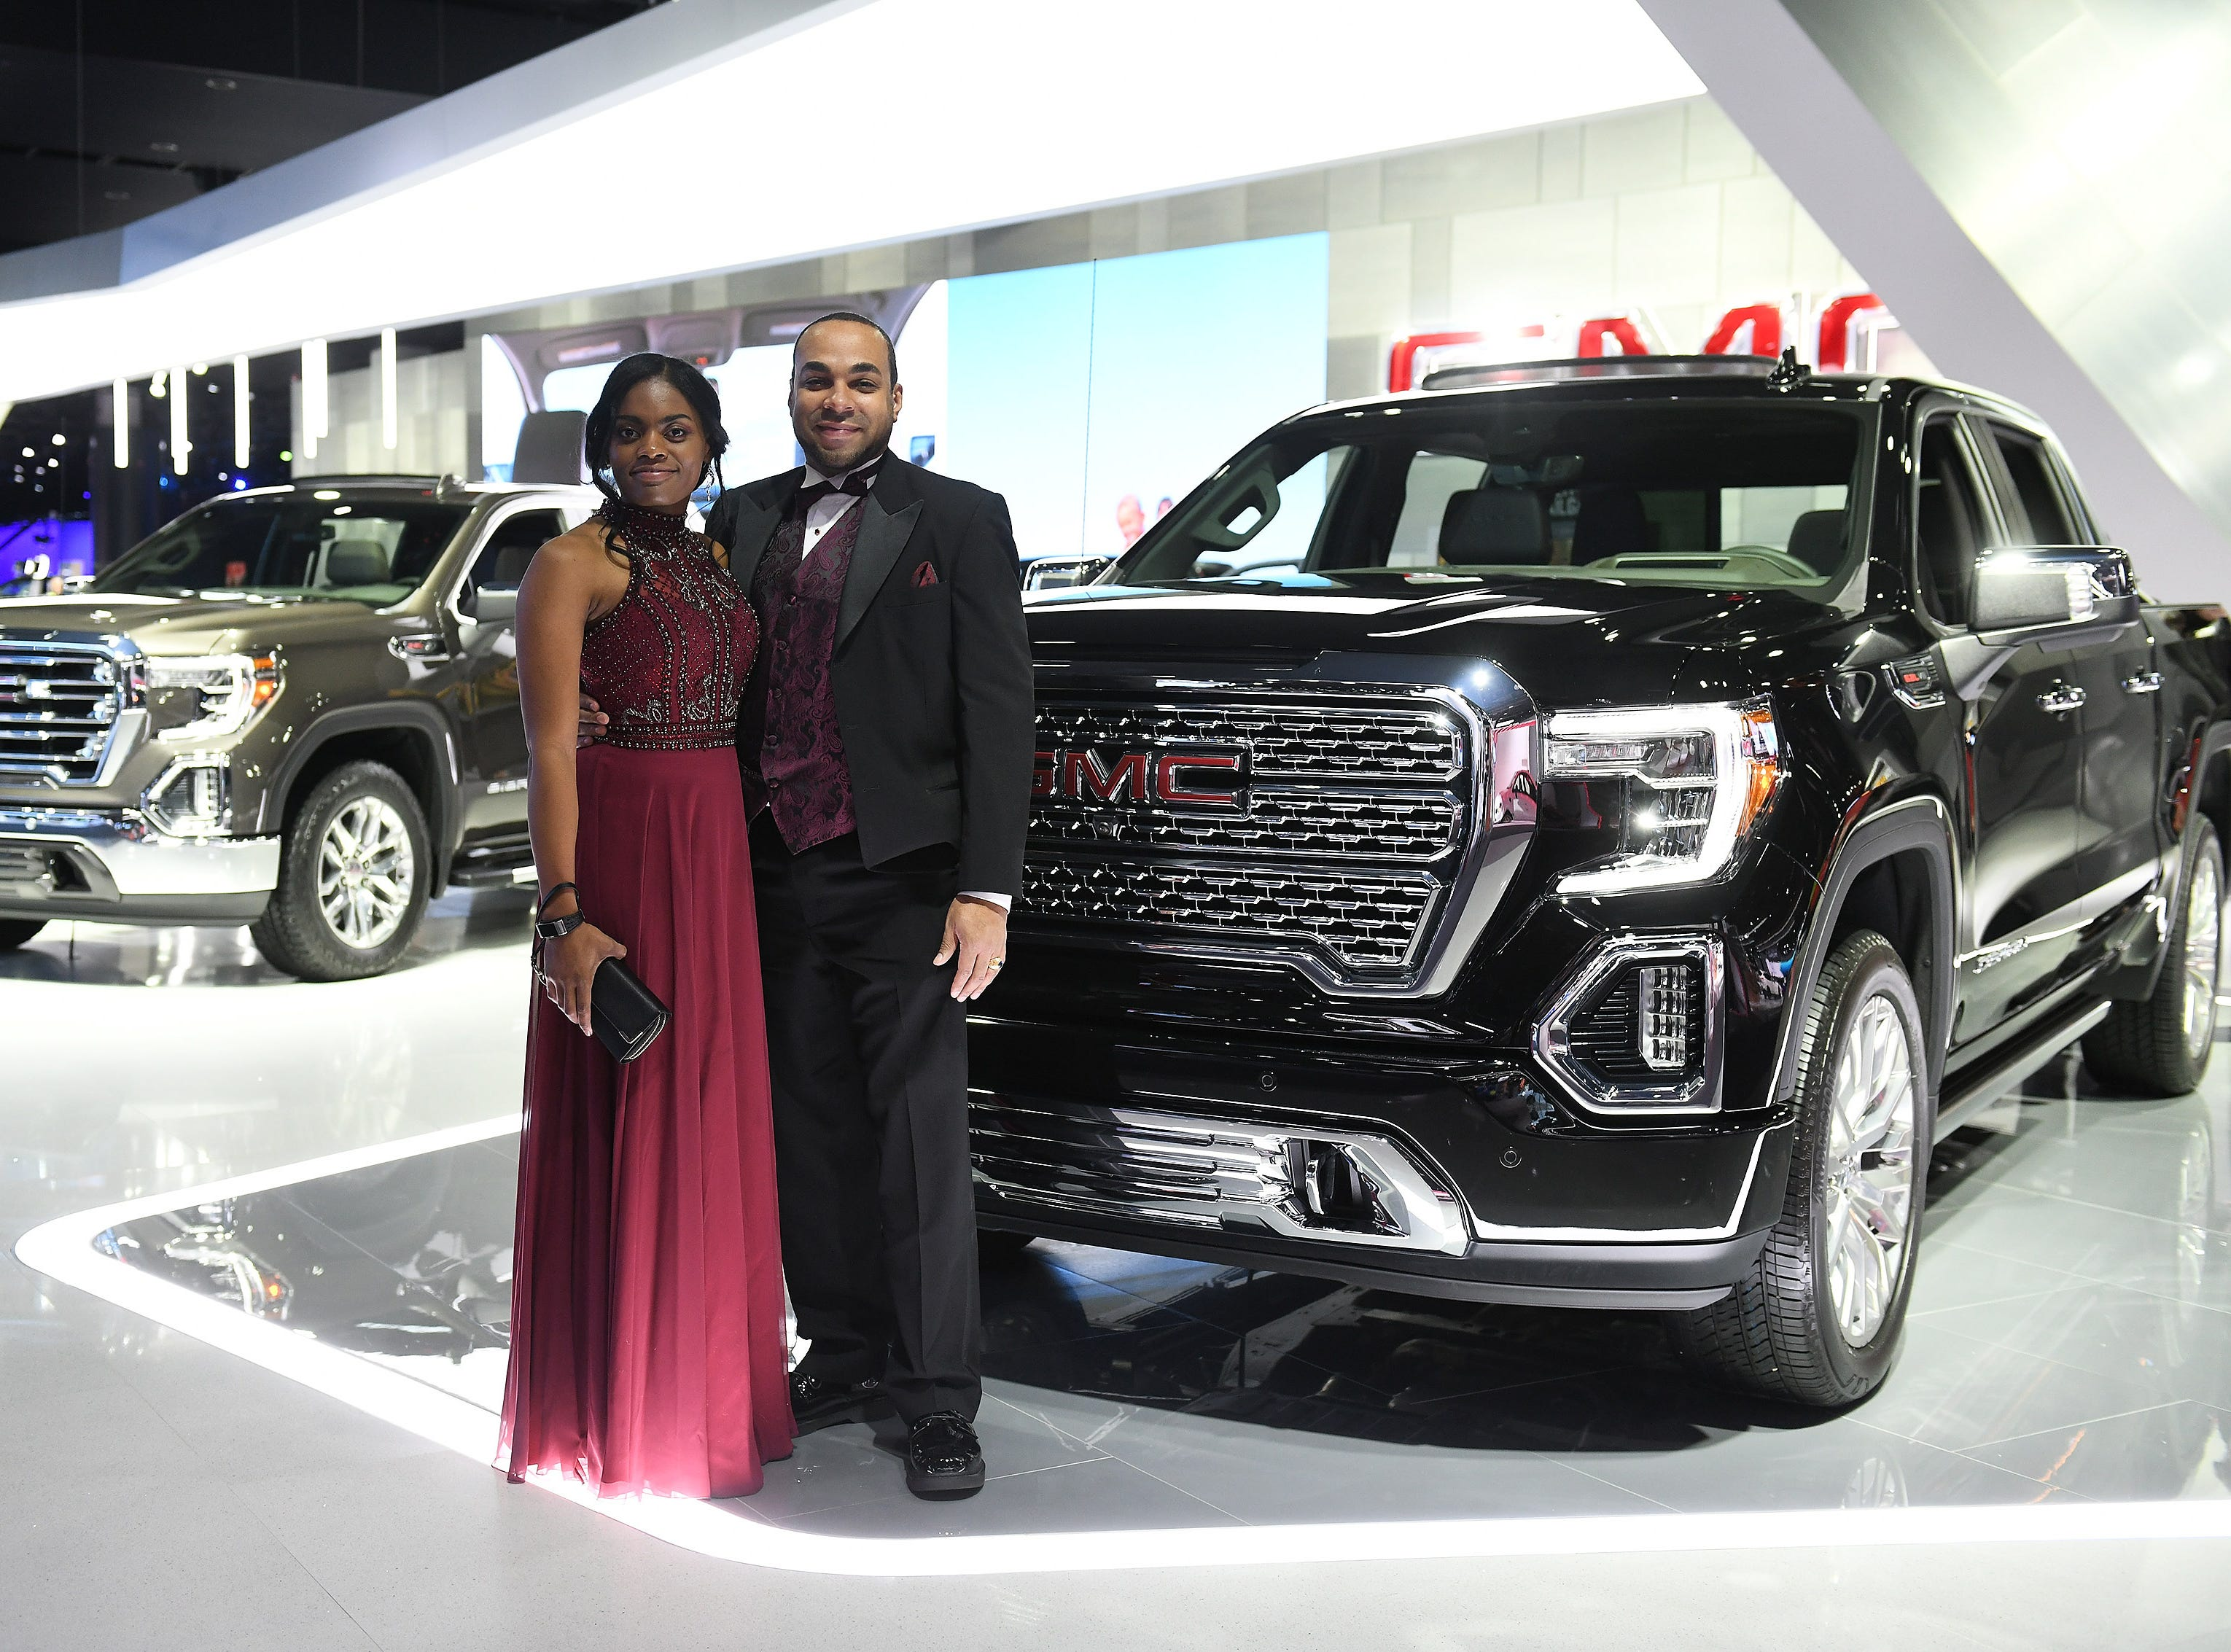 Andrew Hester, GM engineer, of Troy and Andrea Micou at the GMC display at the Charity Preview.